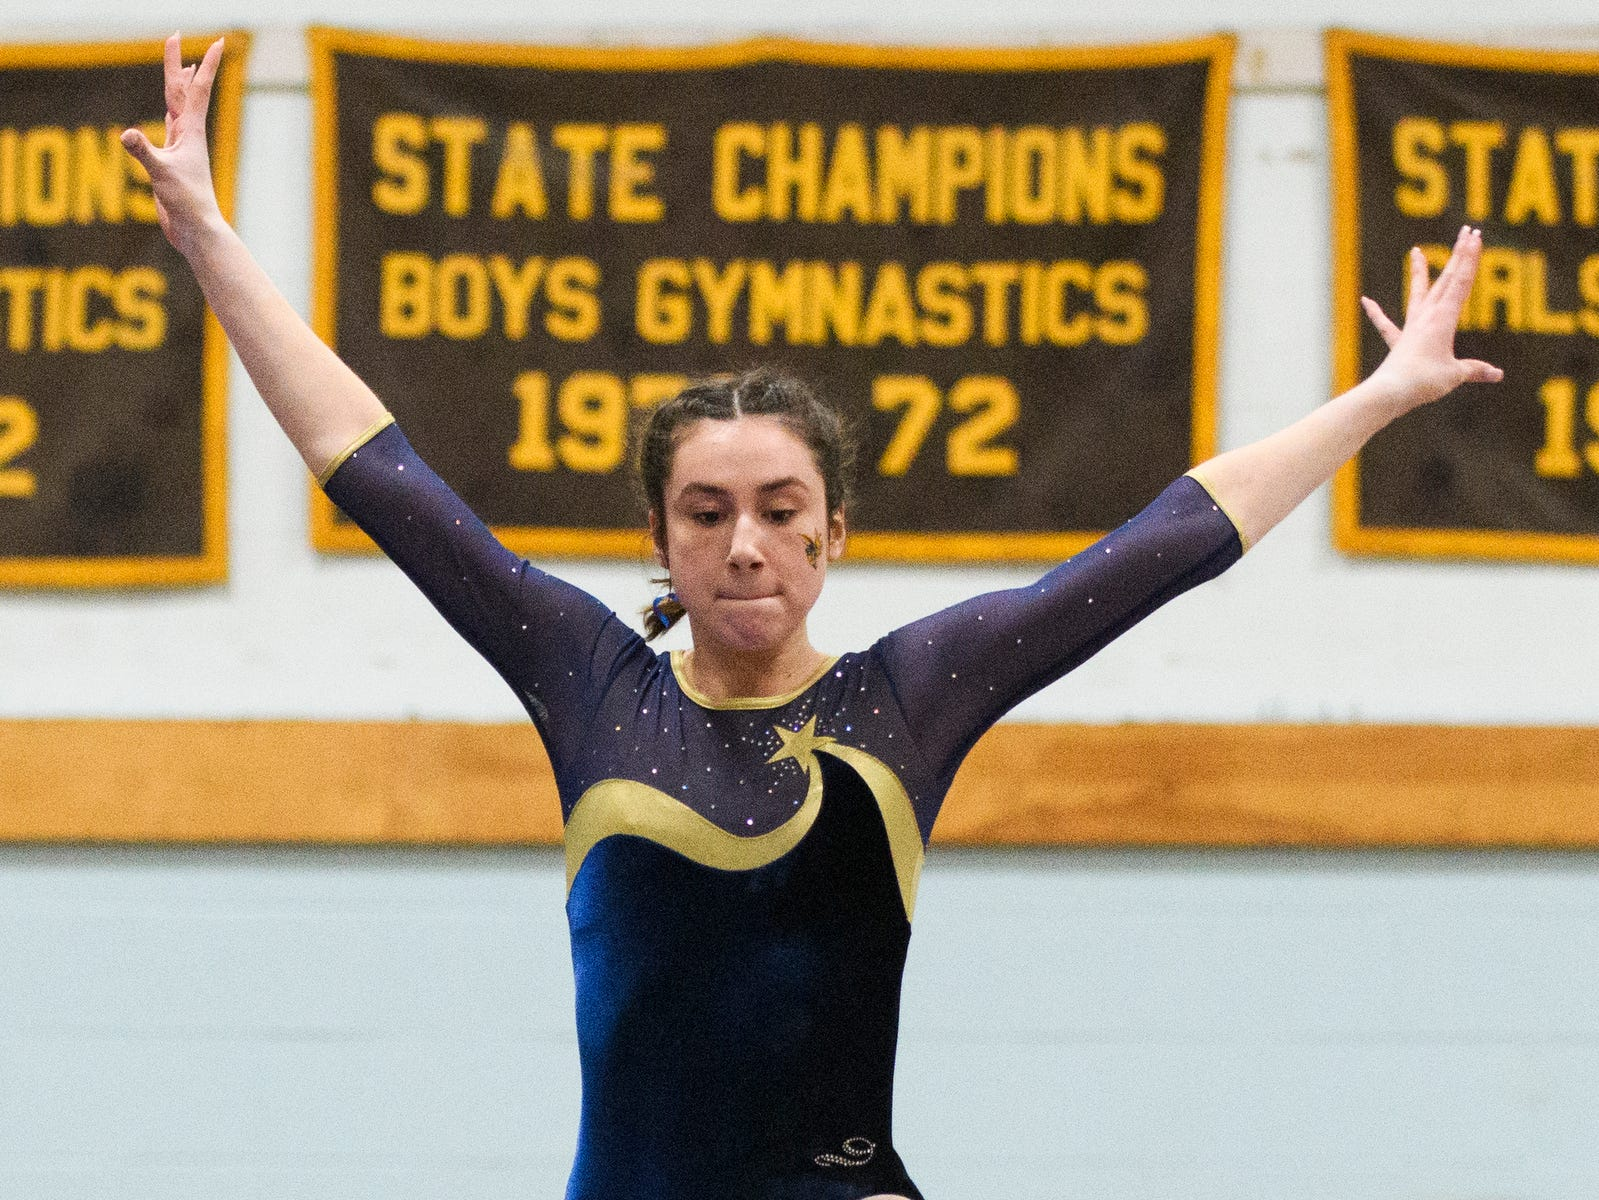 Essex's Ella Lesny competes in the bars during the 2019 high school gymnastics championship at Essex High School on Saturday afternoon February 16, 2019 in Essex, Vermont.